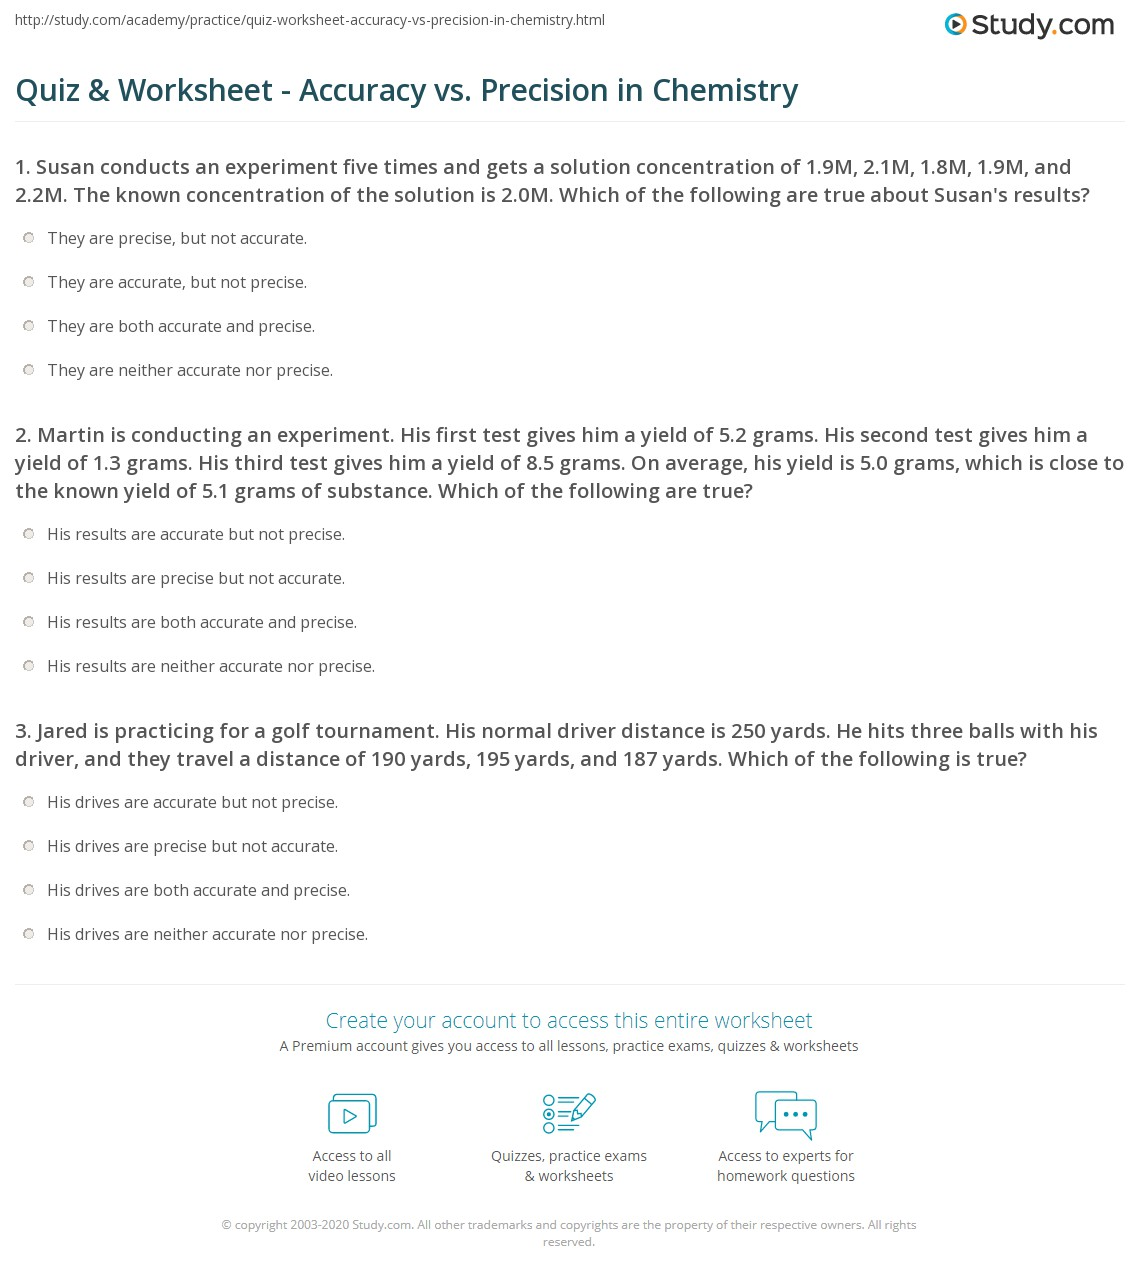 Quiz & Worksheet - Accuracy vs. Precision in Chemistry | Study.com